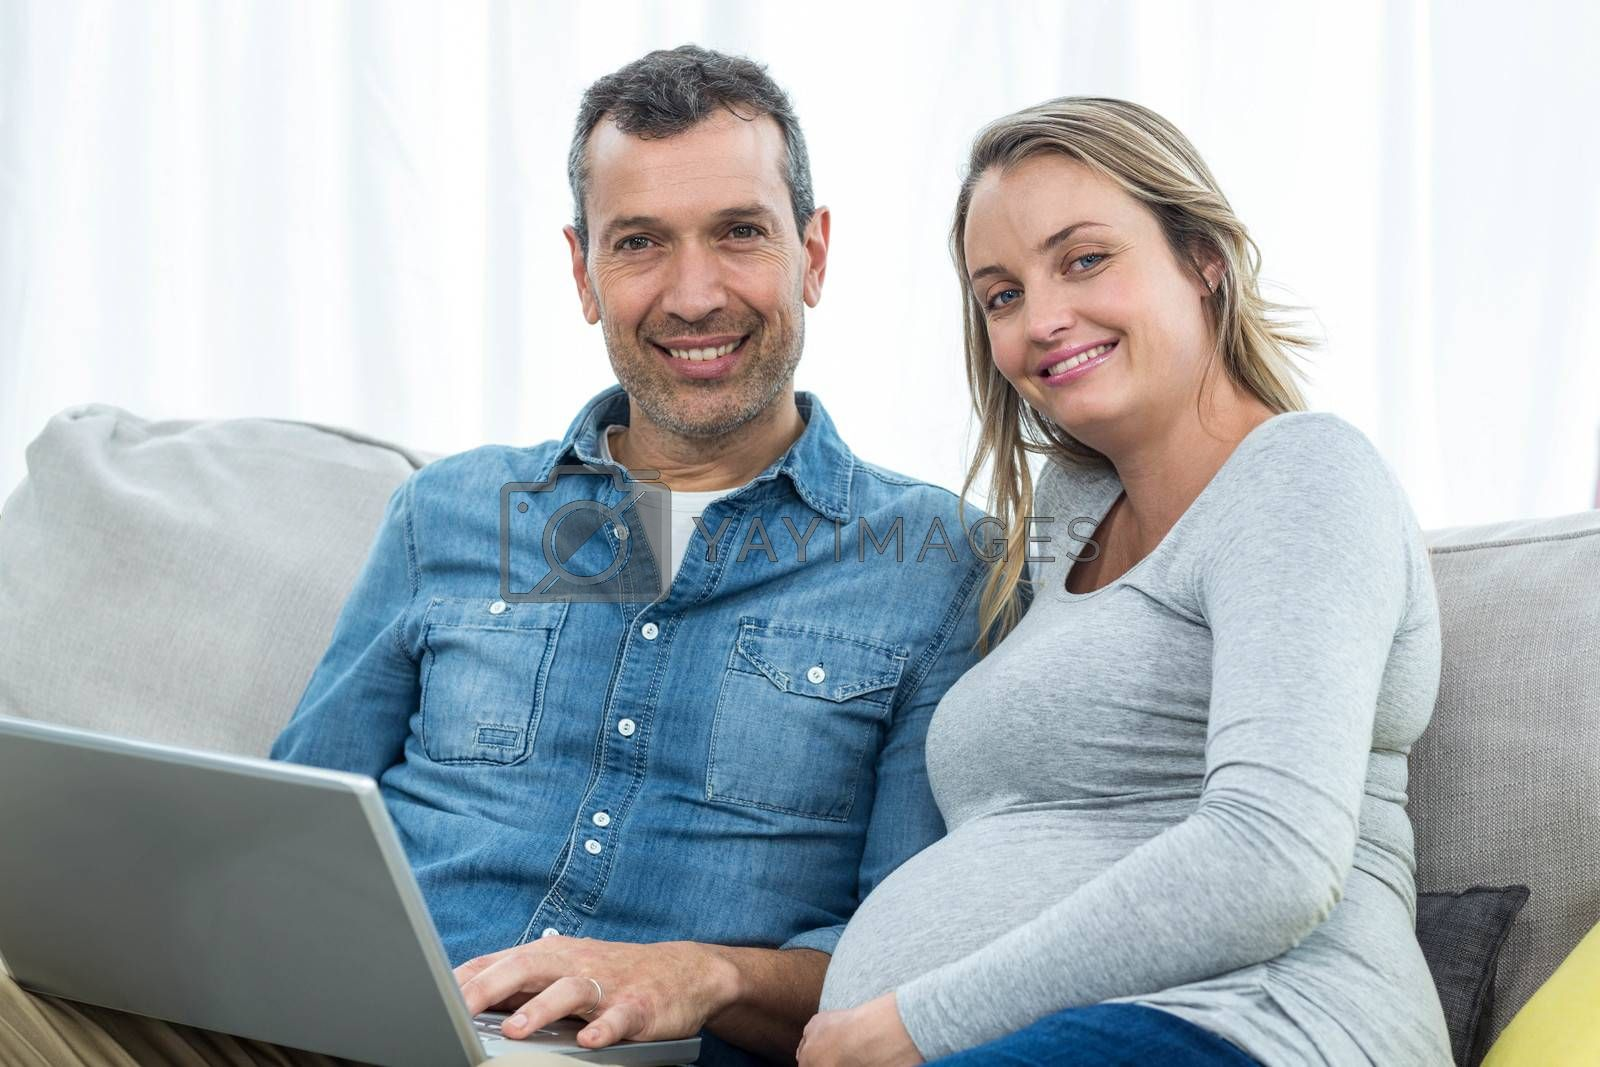 Portrait of couple sitting together on sofa and using laptop